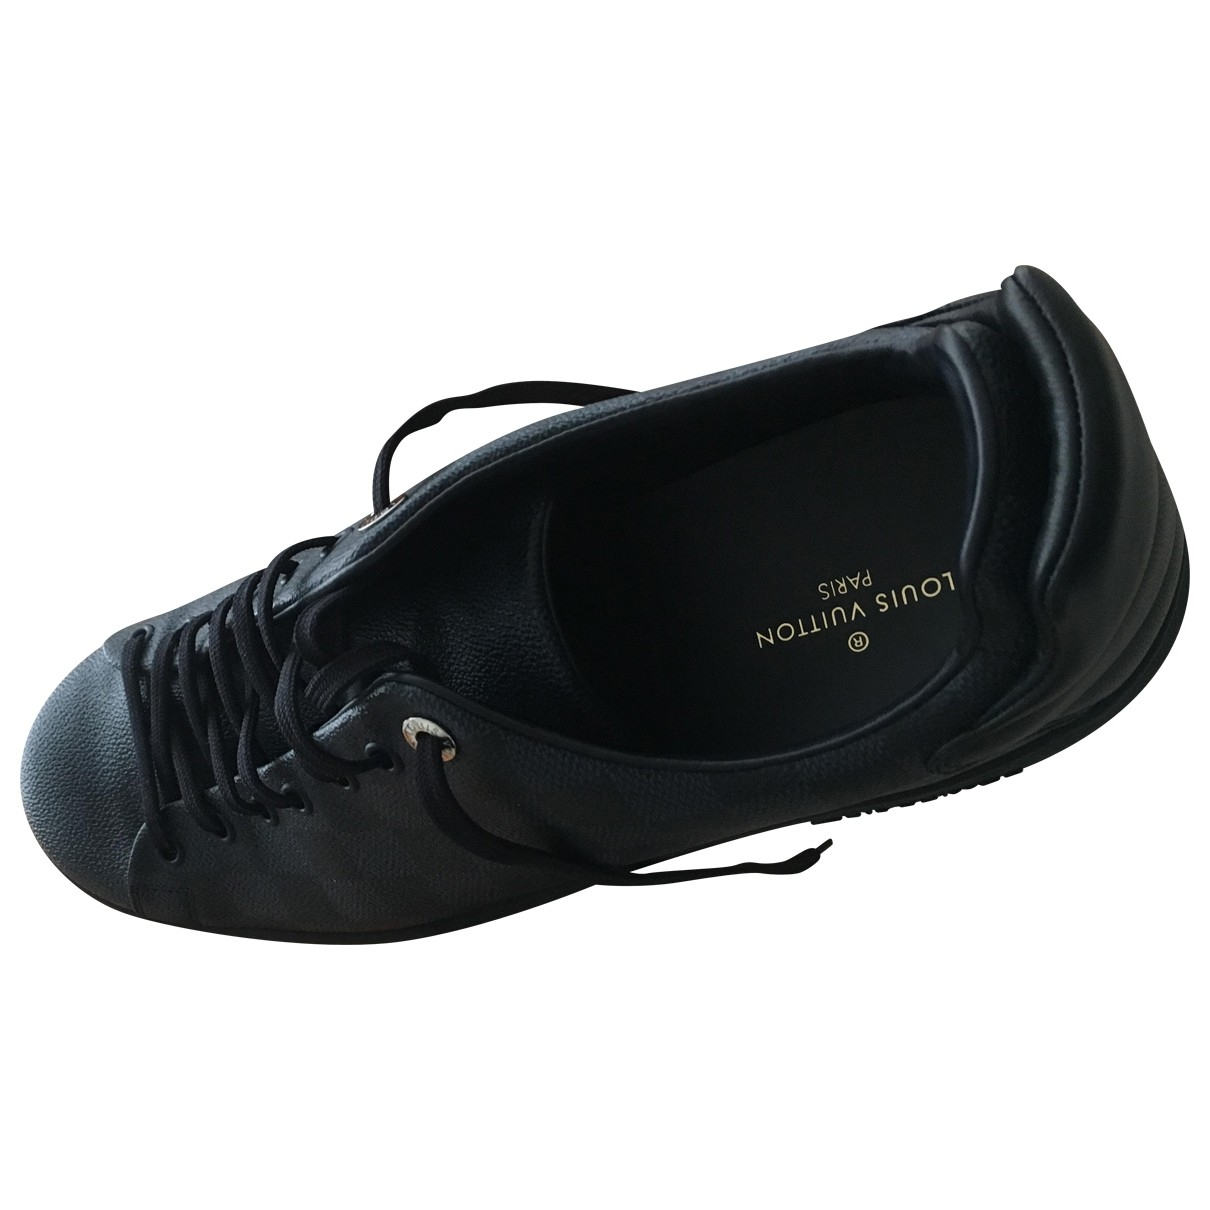 Louis Vuitton Luxembourg Black Leather Trainers for Men 10.5 US